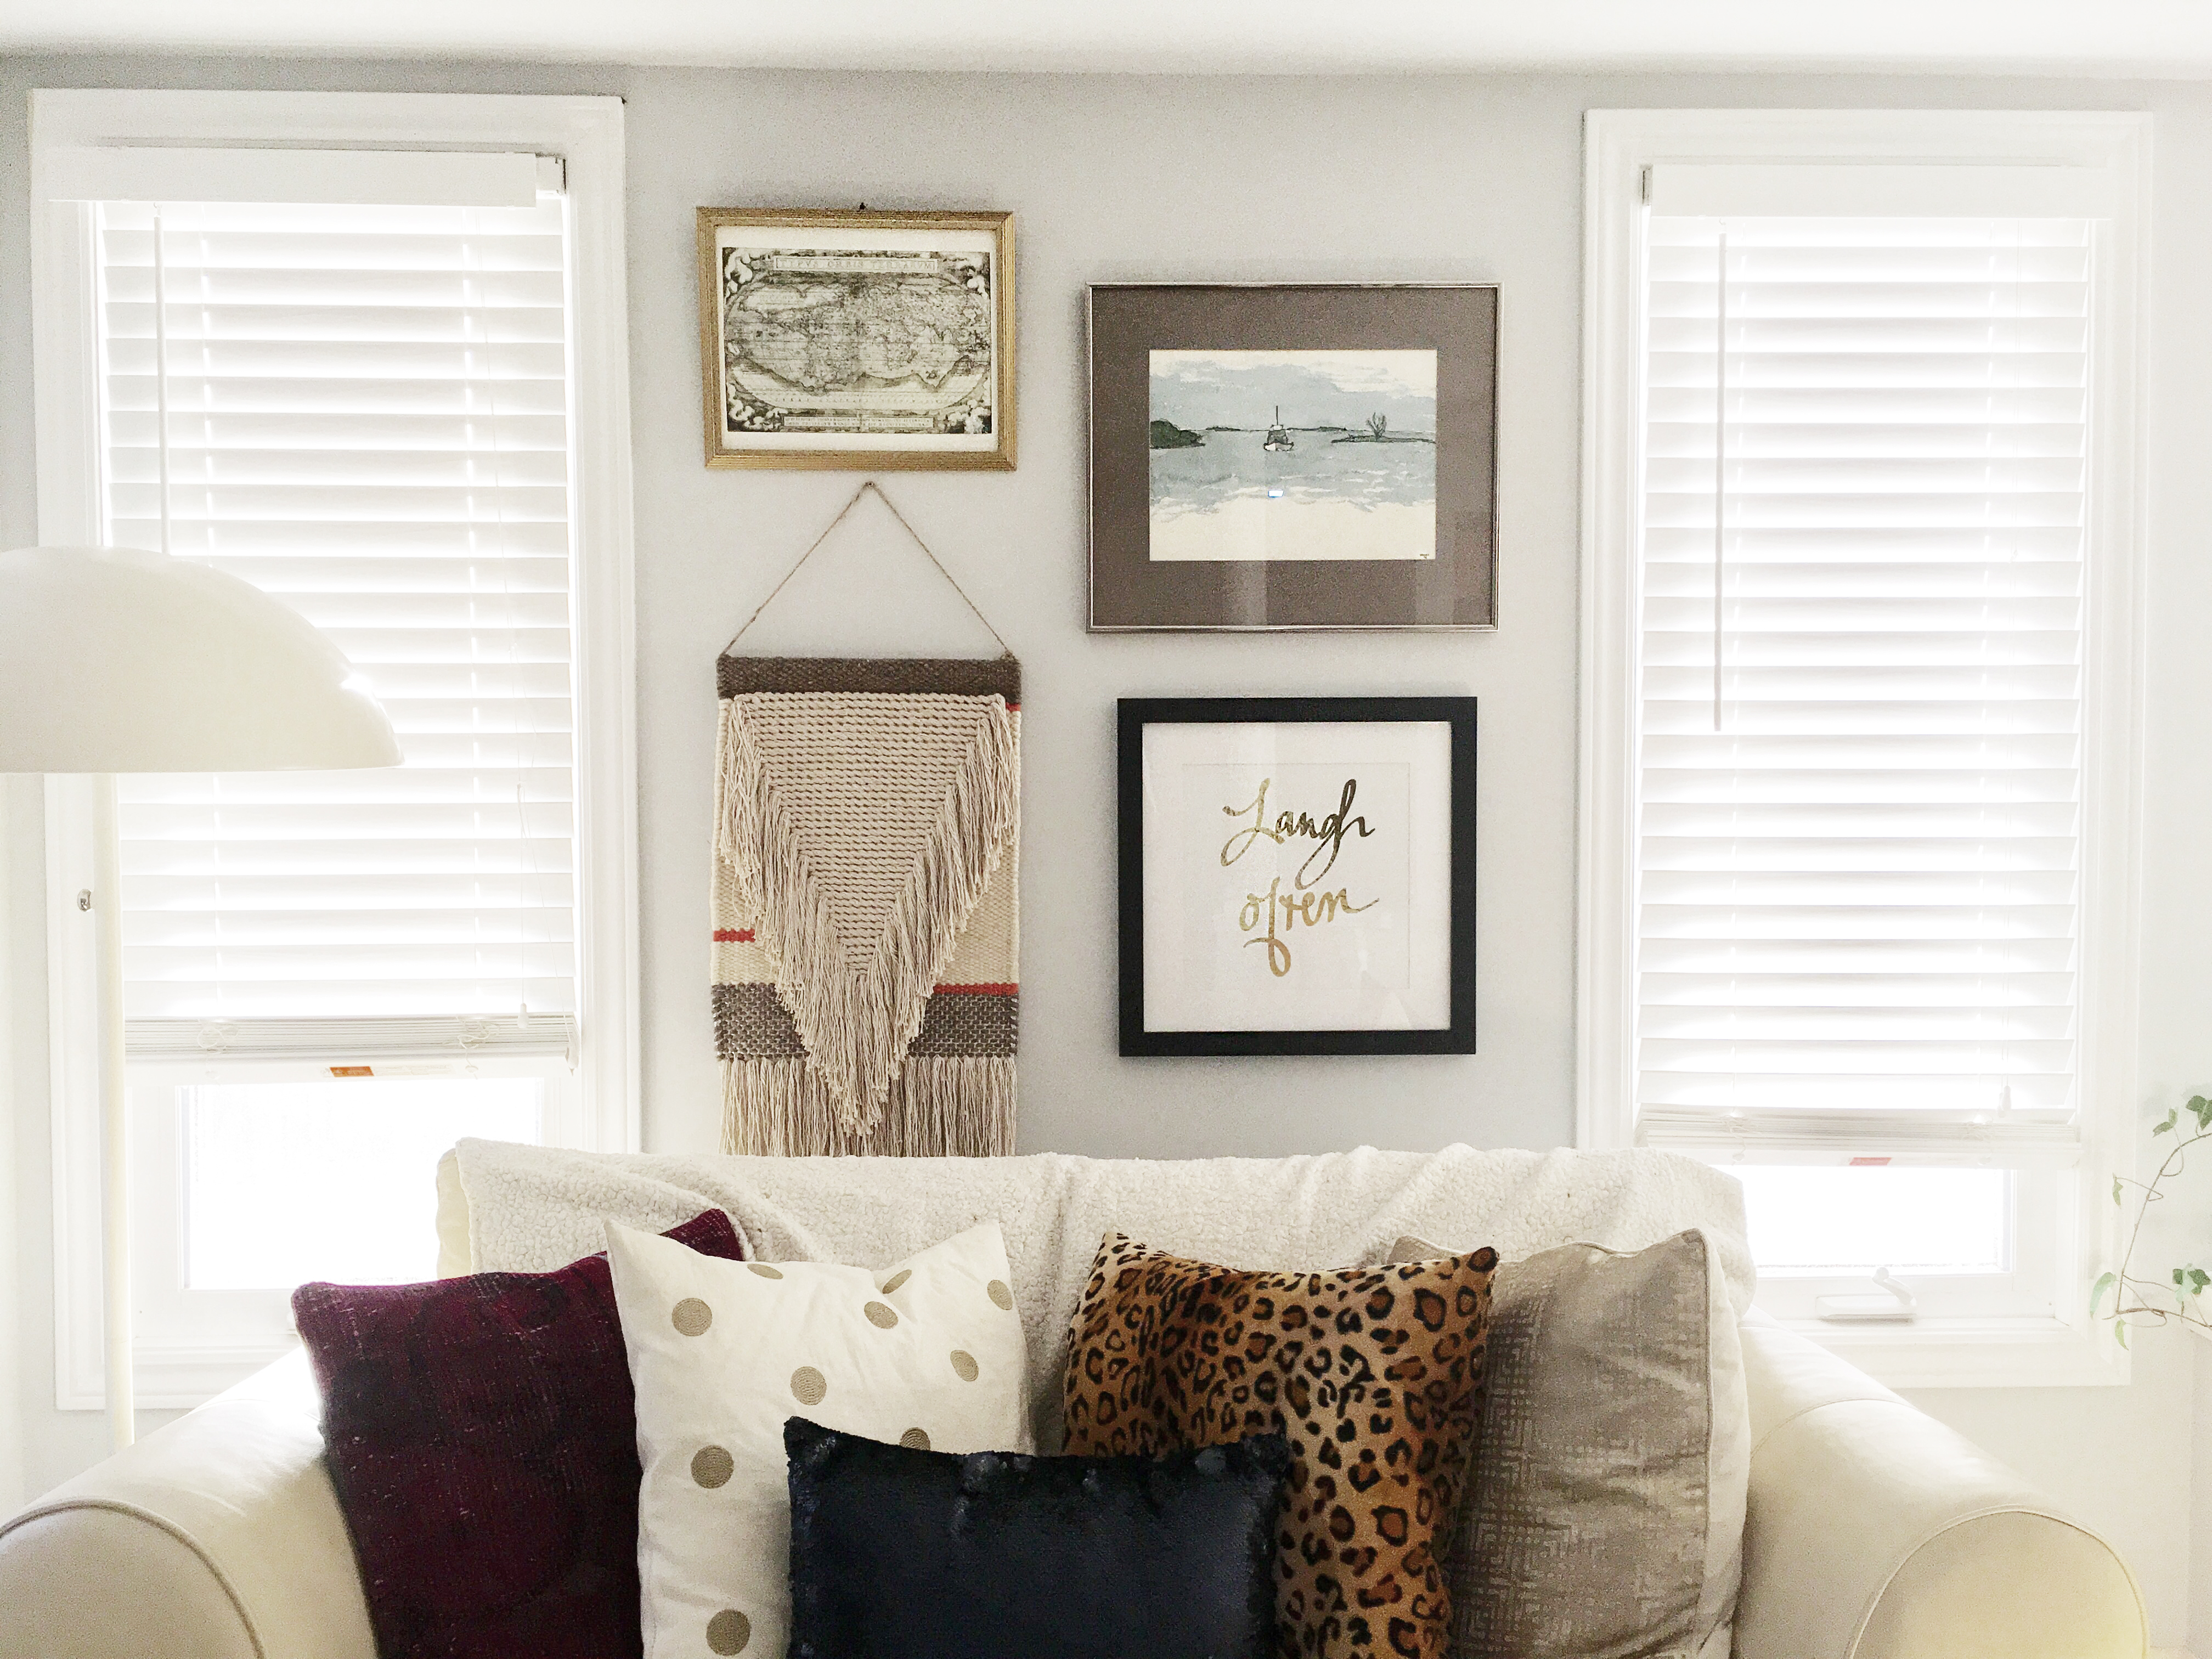 Fresh and Airy Interiors: Wall Groupings 101 -